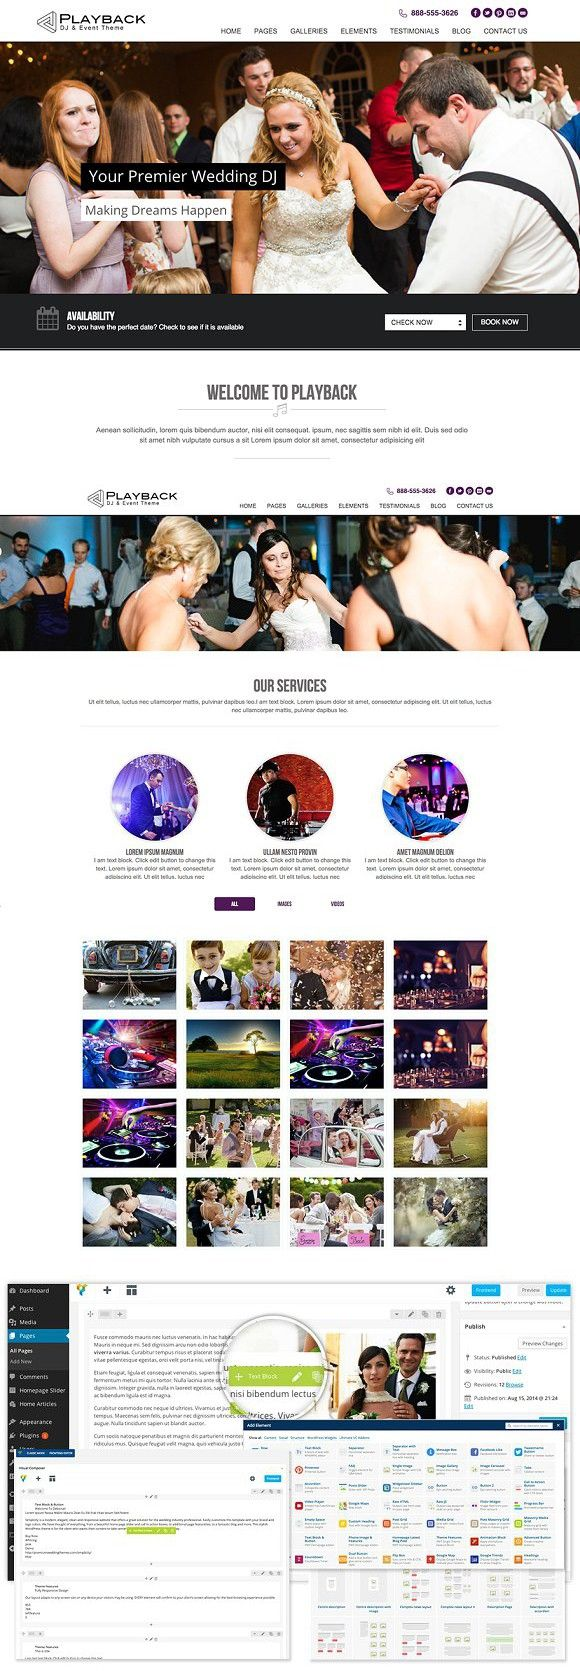 Playback Premium Wedding Dj Theme Wedding Dj Logo Color And Fonts